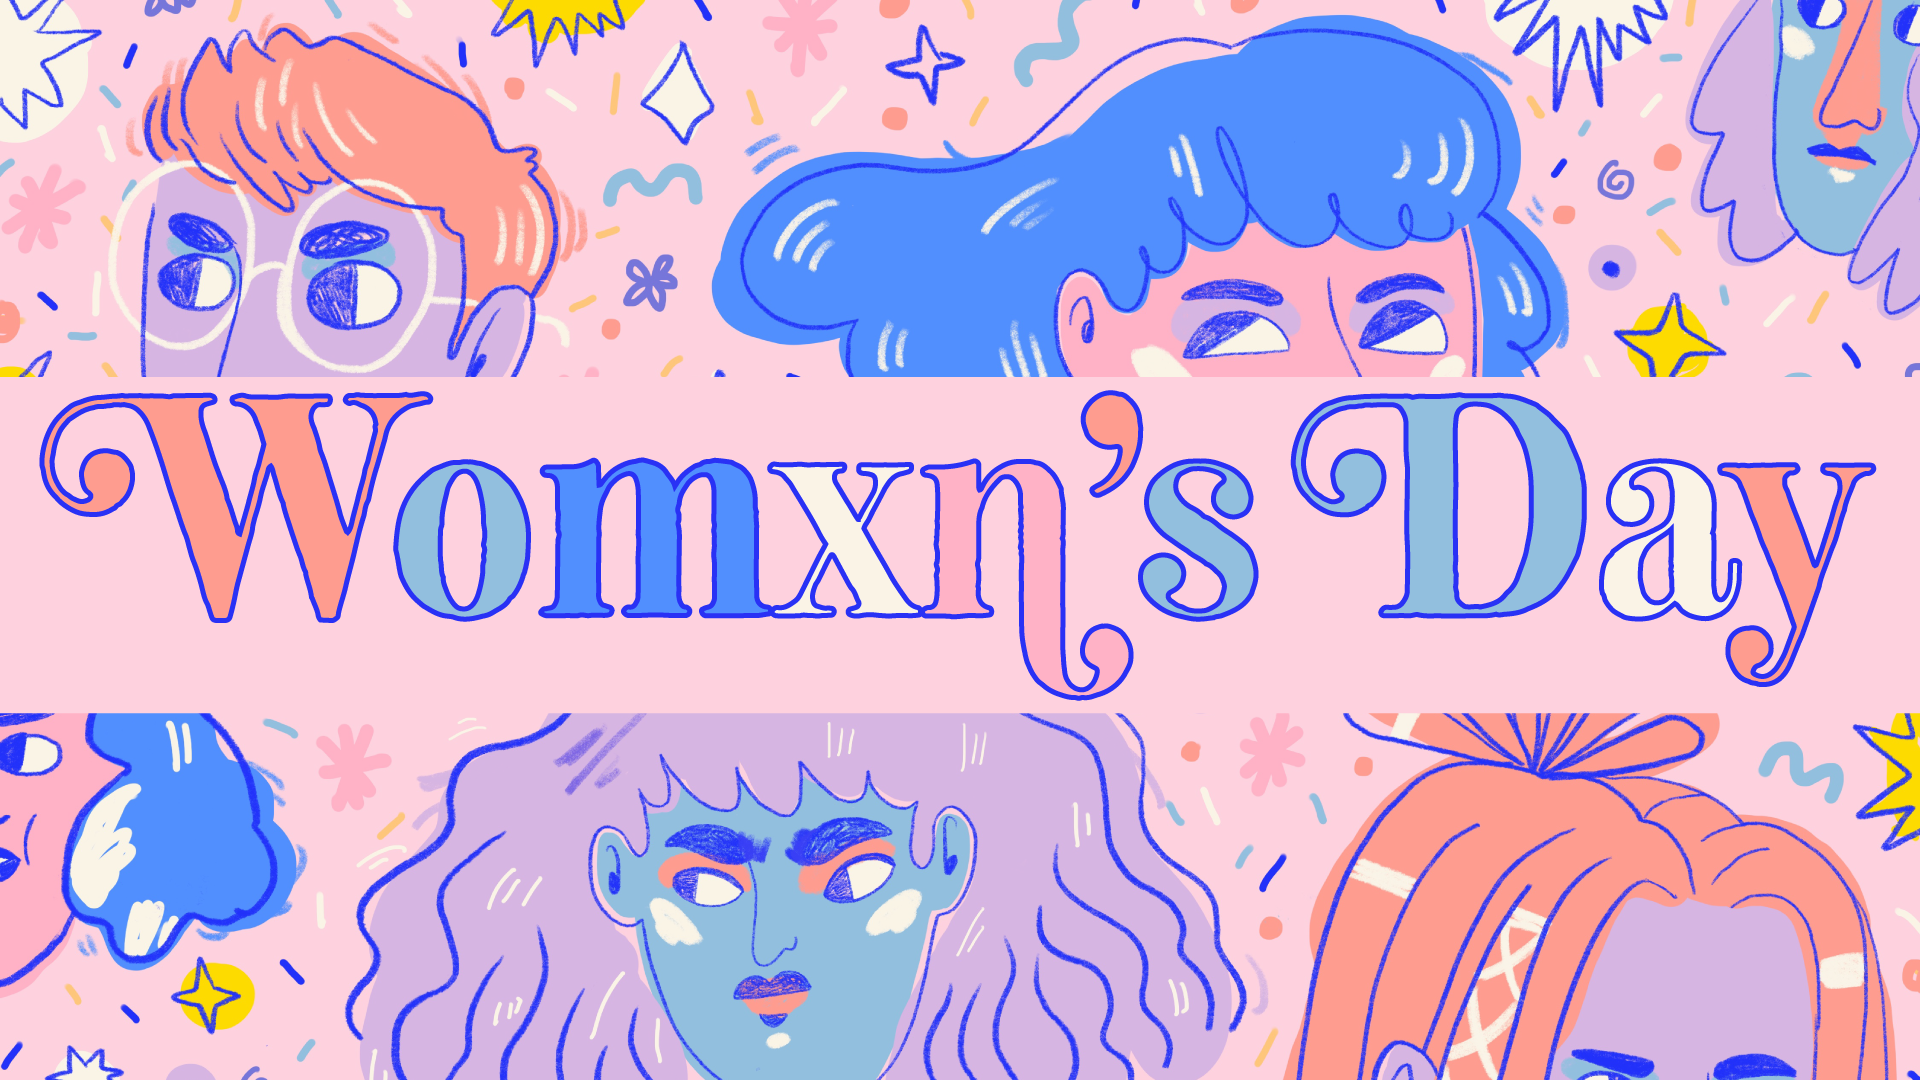 womxnsdaybanner.png